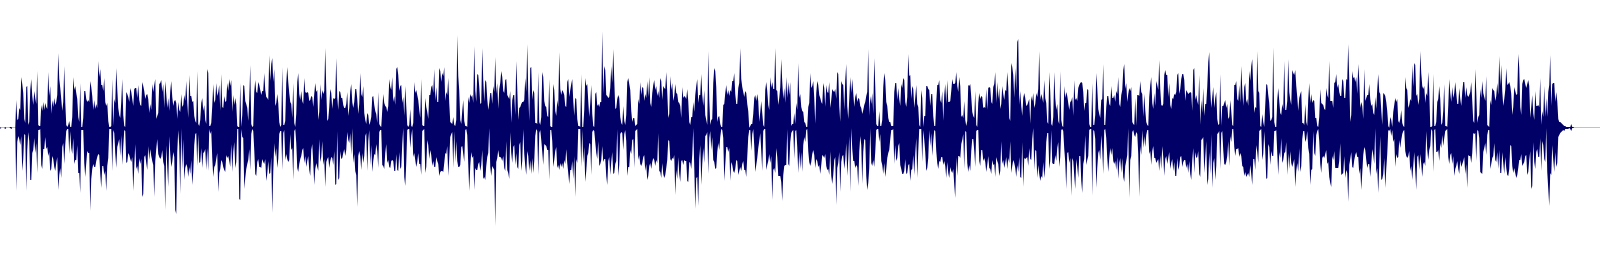 waveform of track #100620